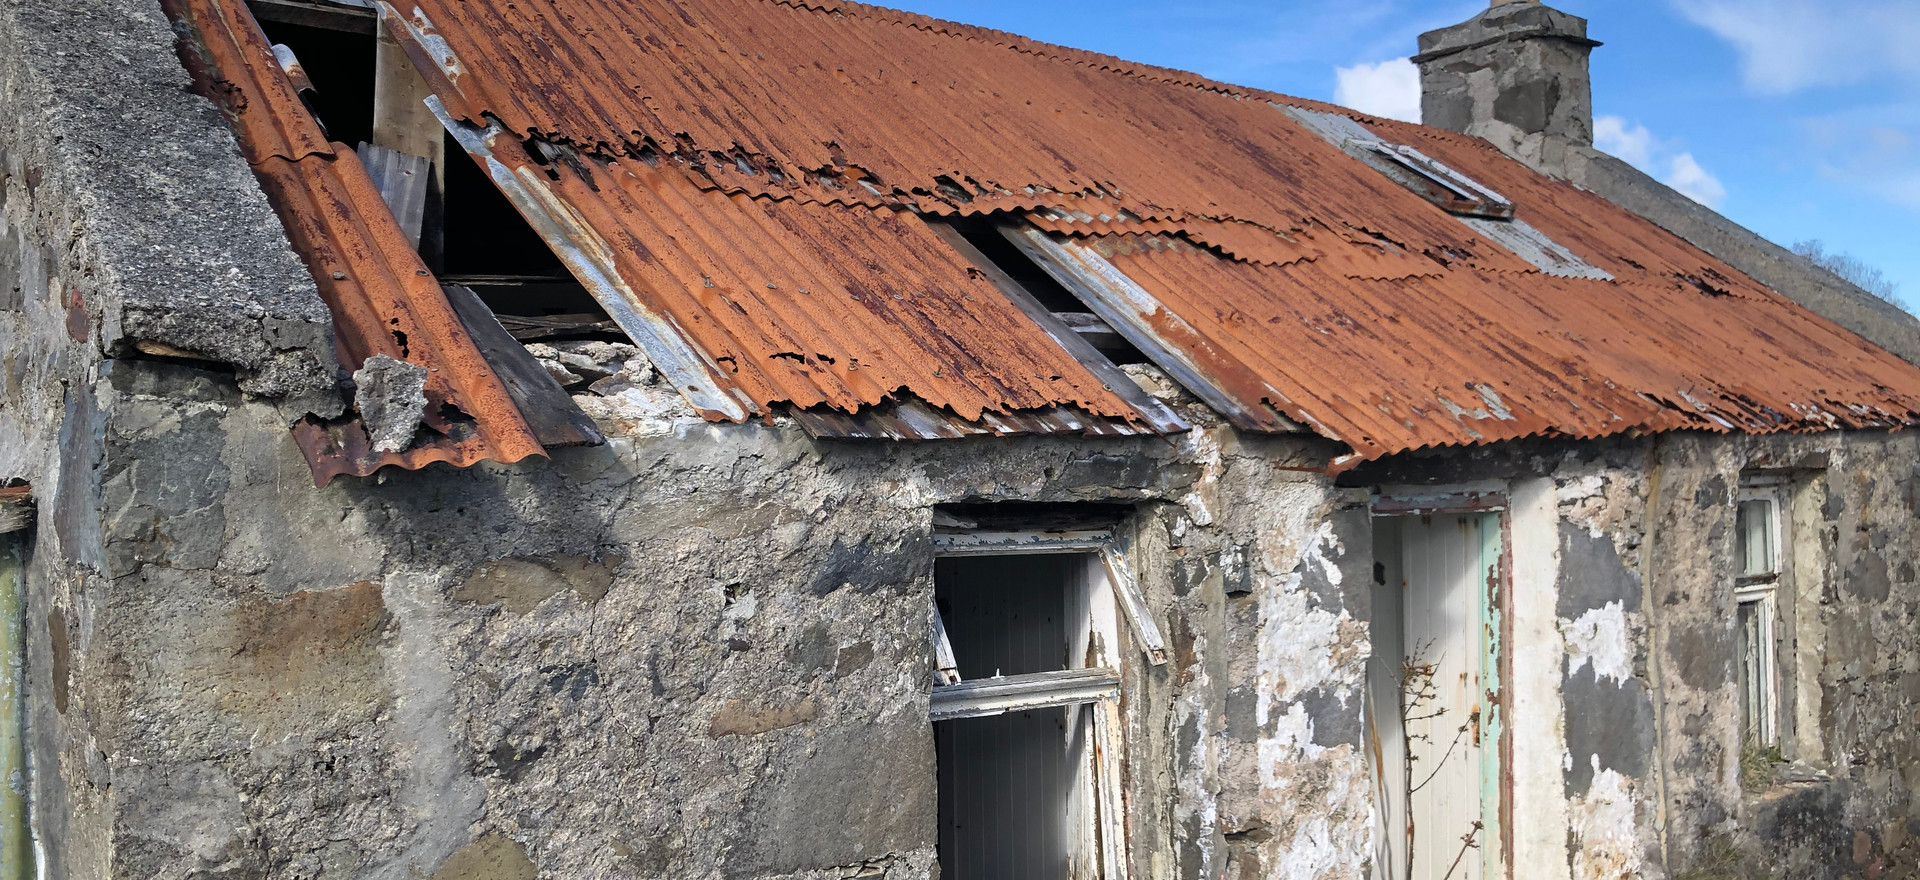 Roof in need of repair, March 2020